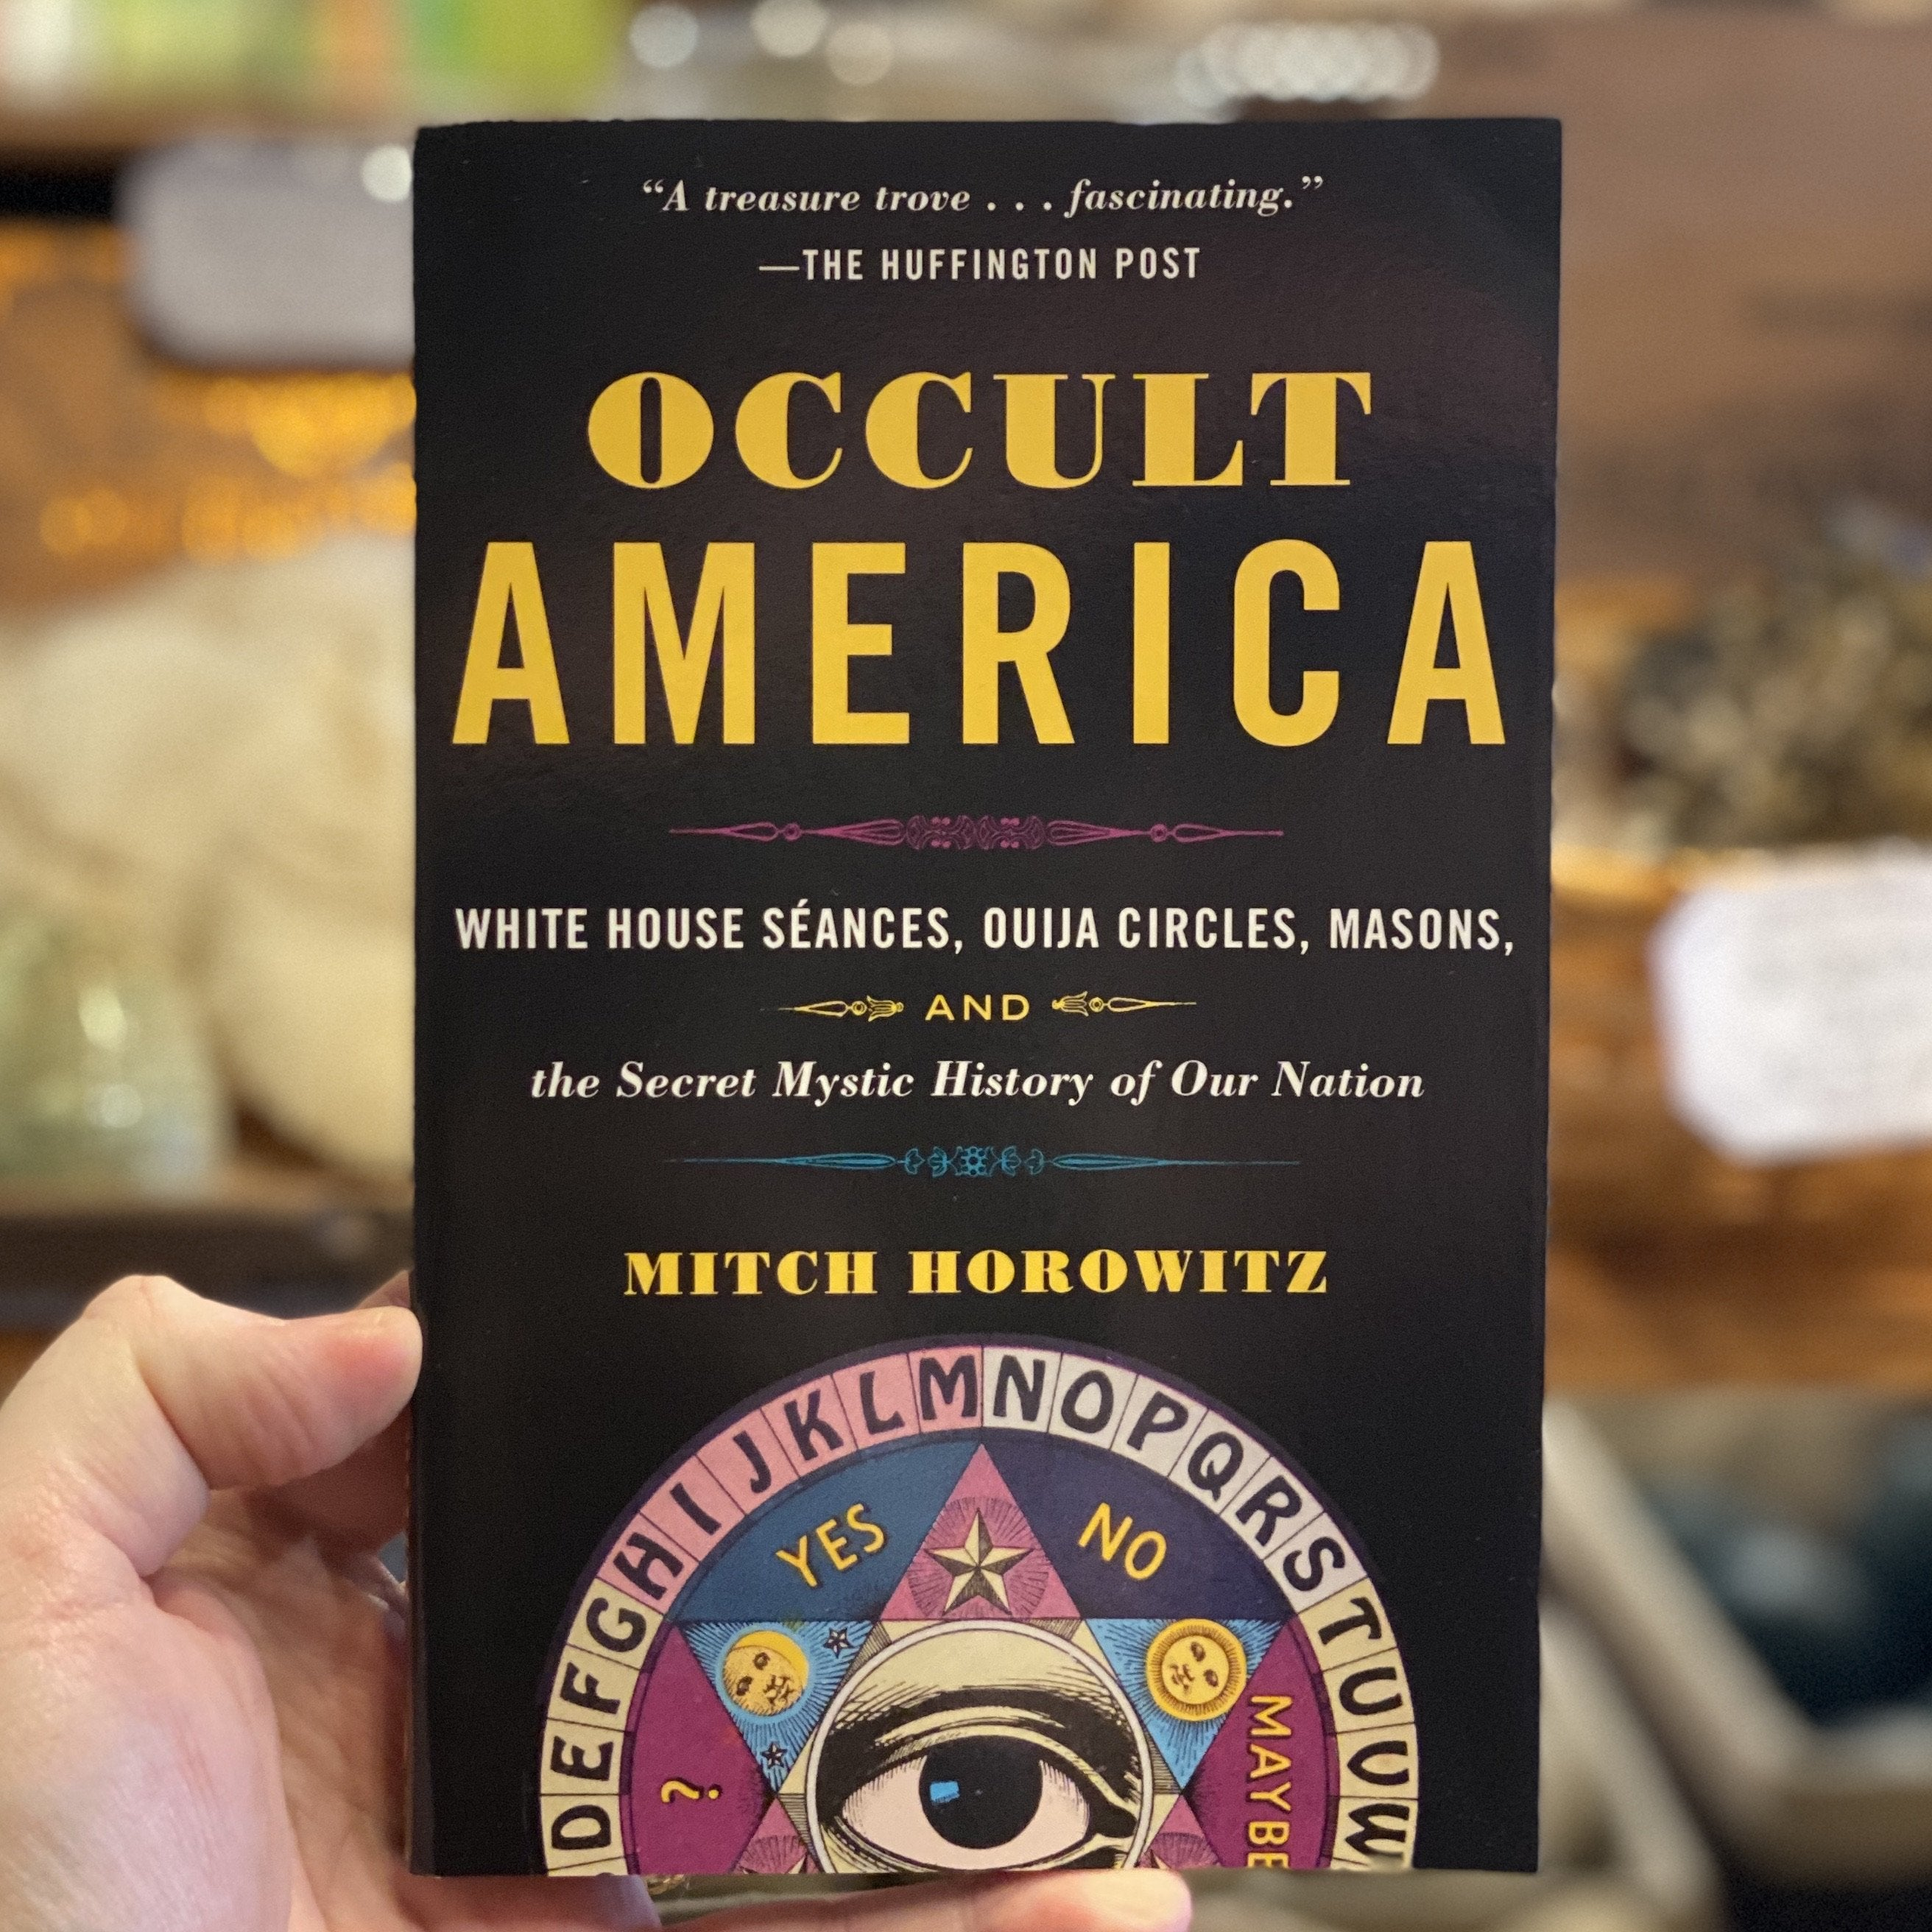 Occult America: White House Séances, Ouija Circles, Masons, and the Secret Mystic History of Our Nation by Mitch Horowitz